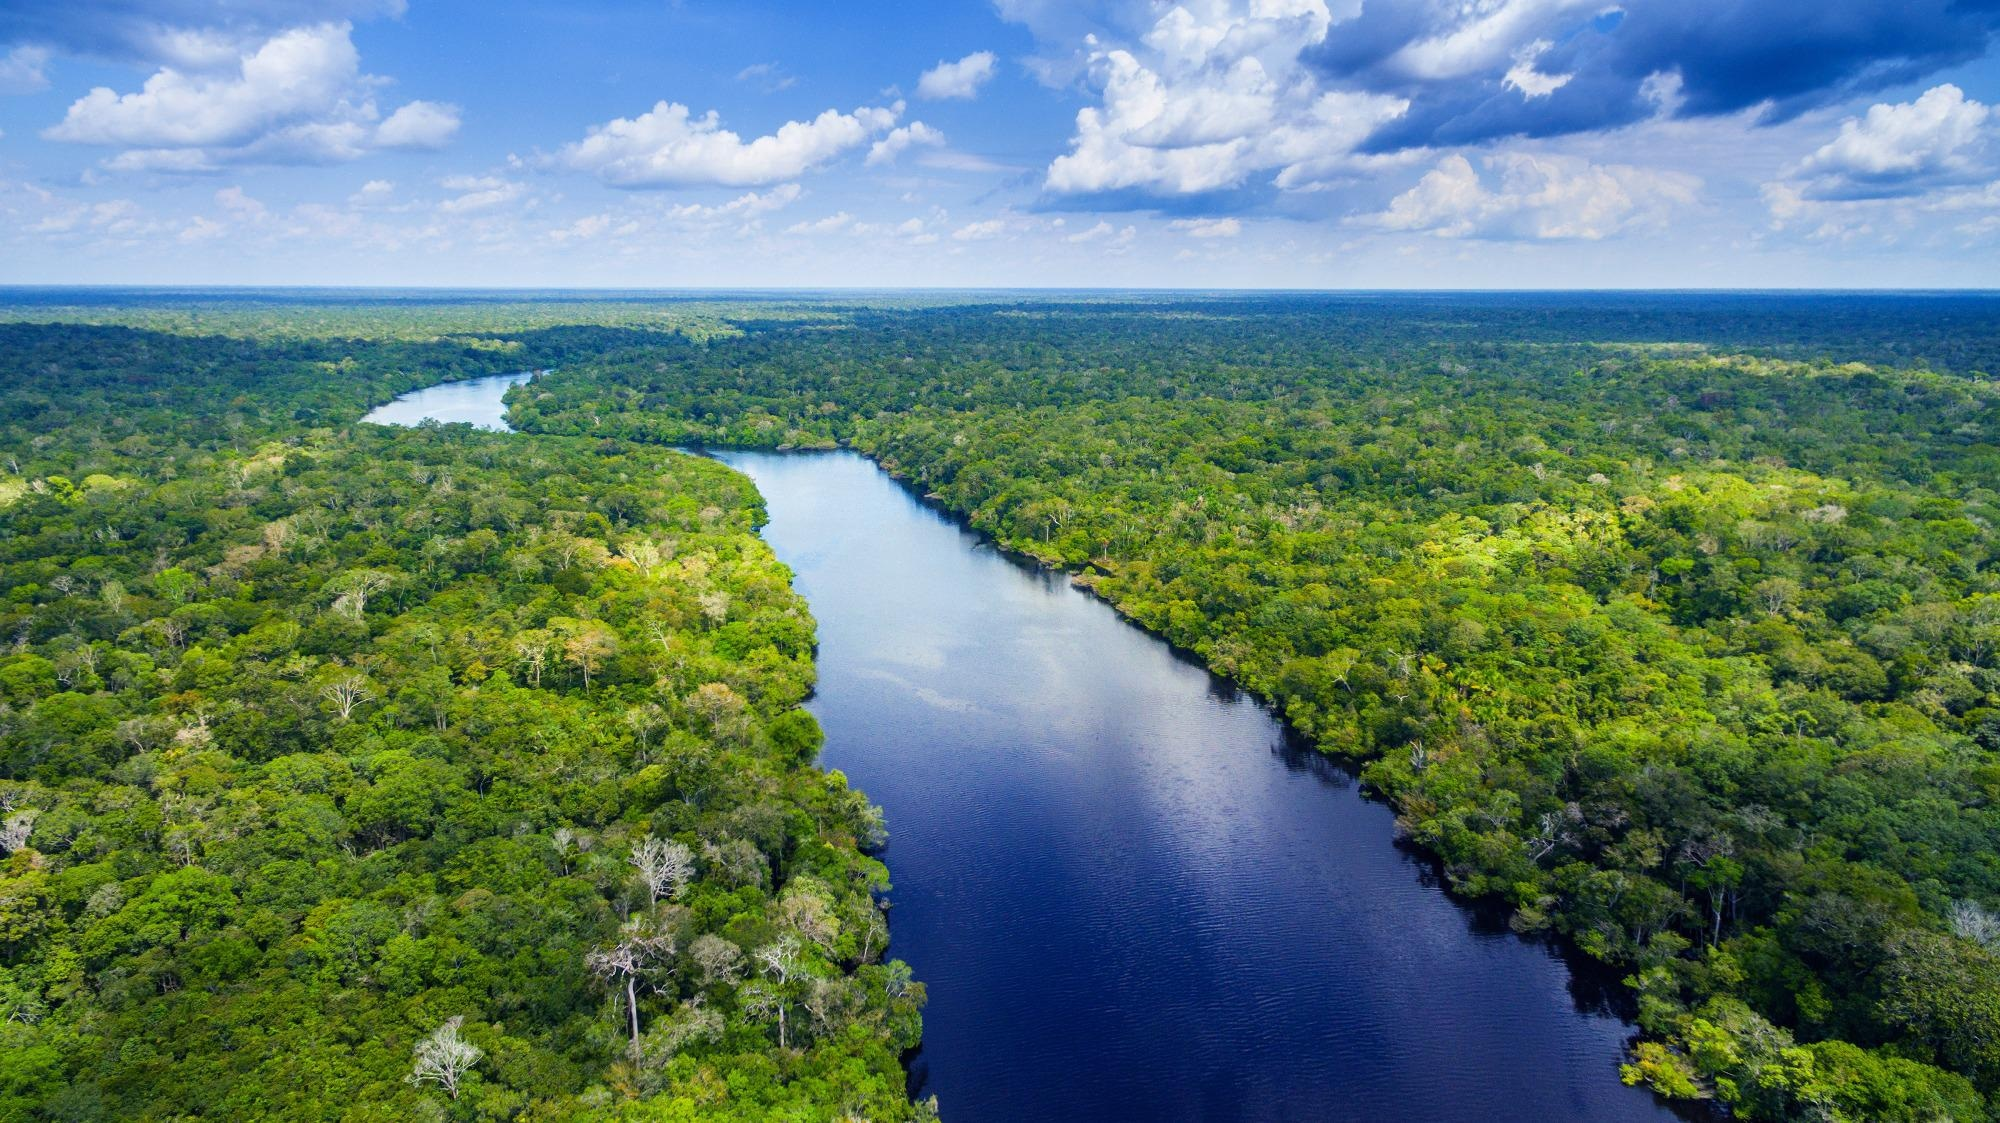 Indigenous Amazonia Populations may have Declined due to Climate Change Before Great Dying